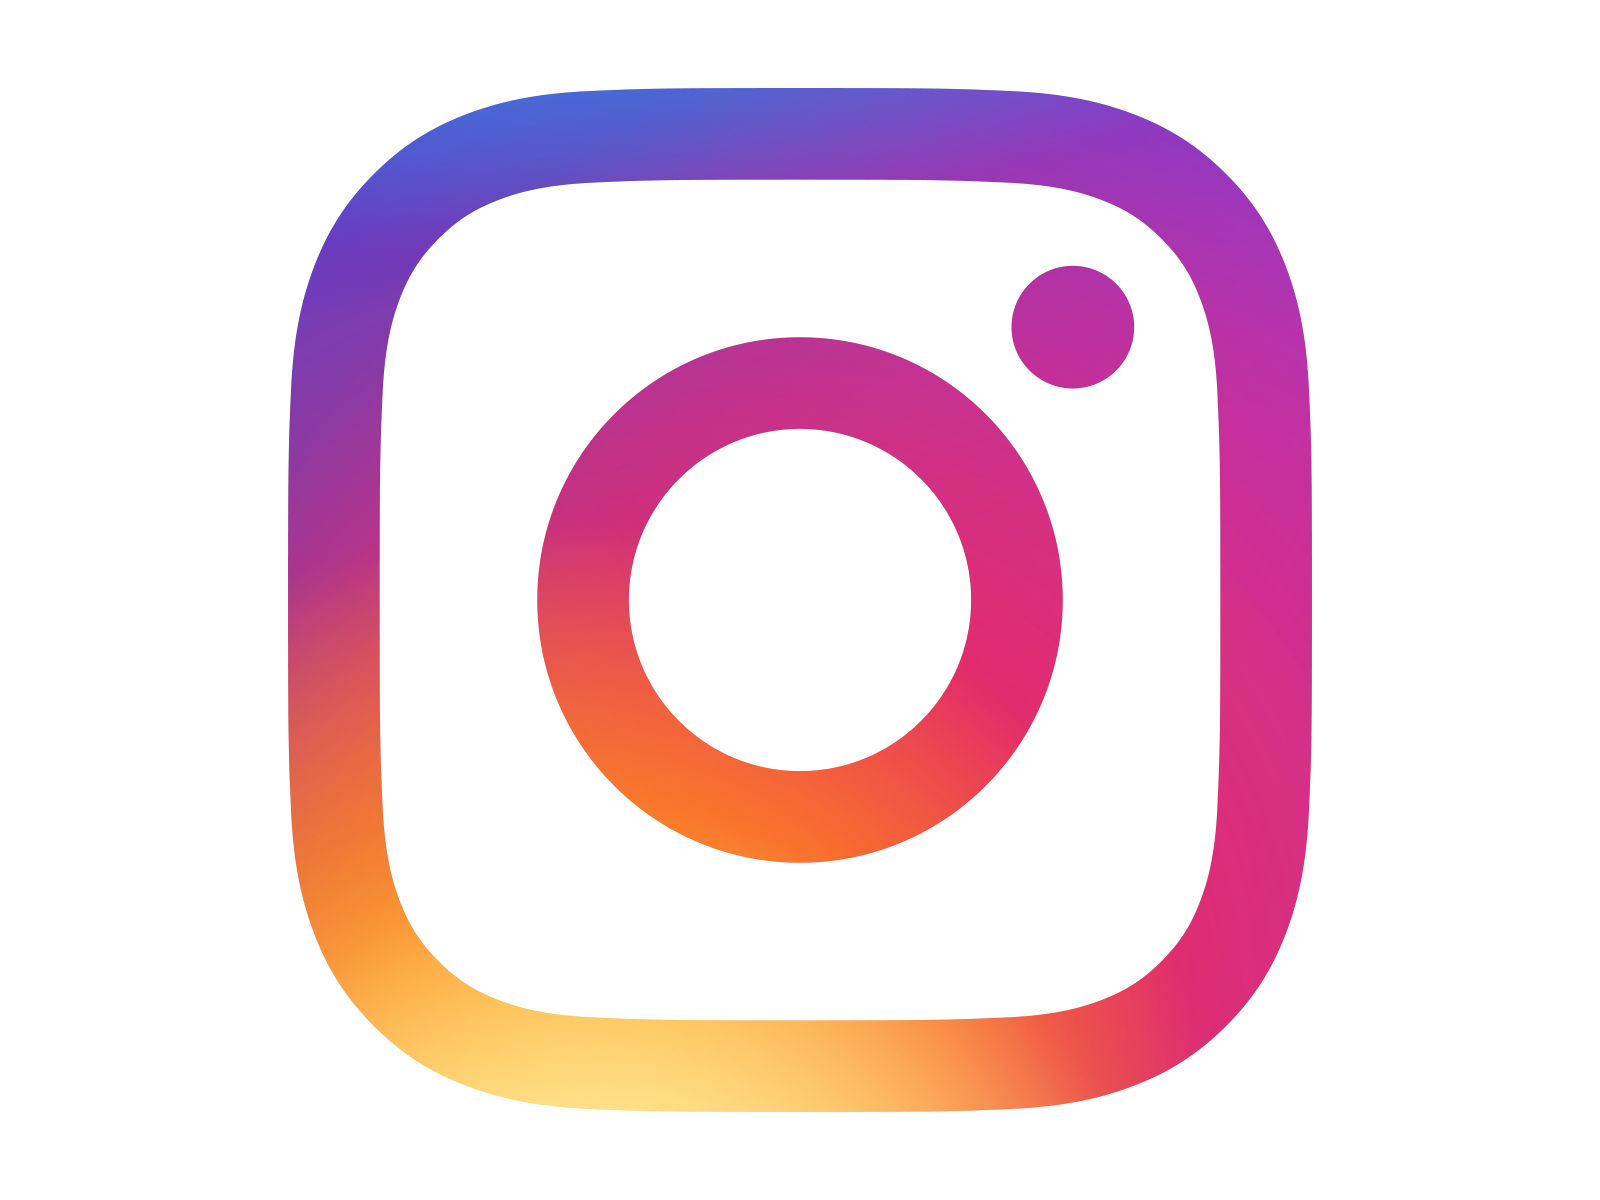 Instagram Logo Photo Icon 13594